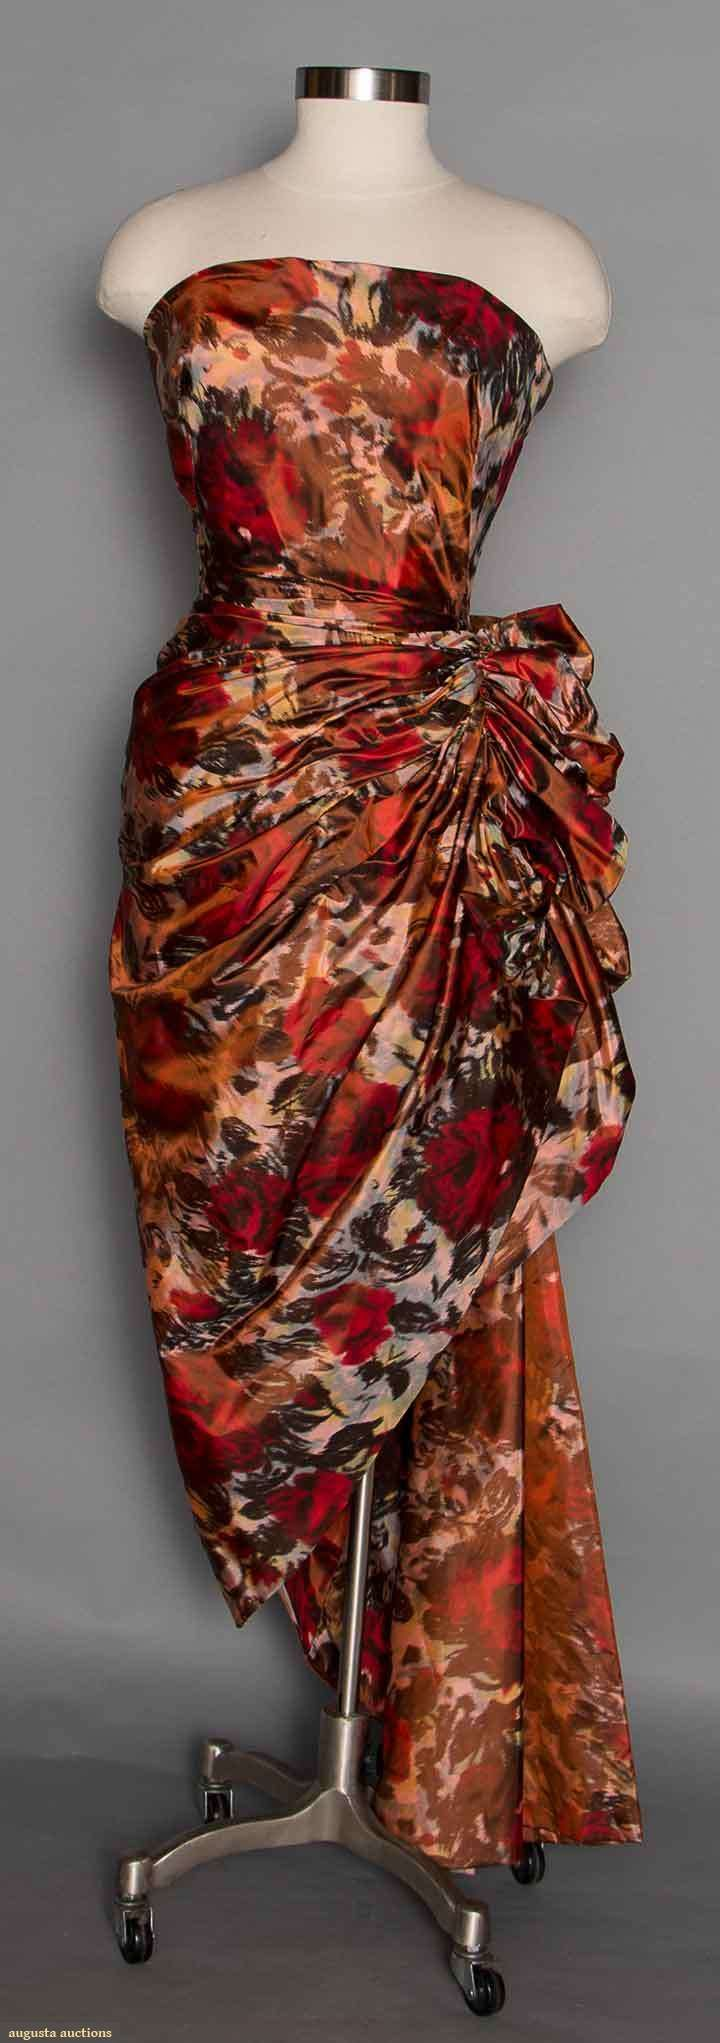 1950s fall colors silk chine print gown, floral leaves, strapless, hip draping swag, designer couture.